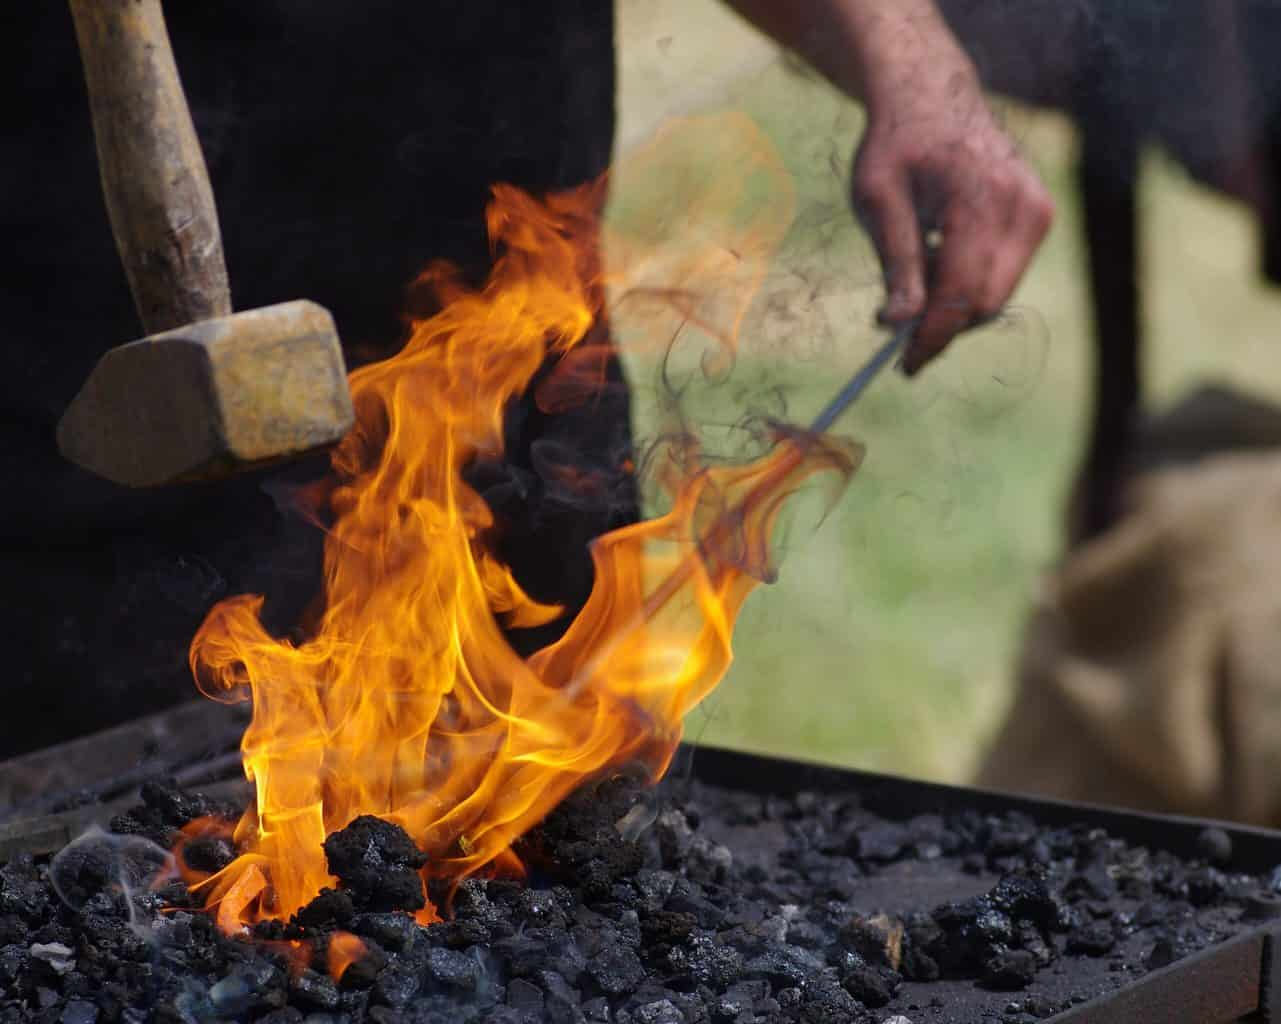 A thin metal on fire